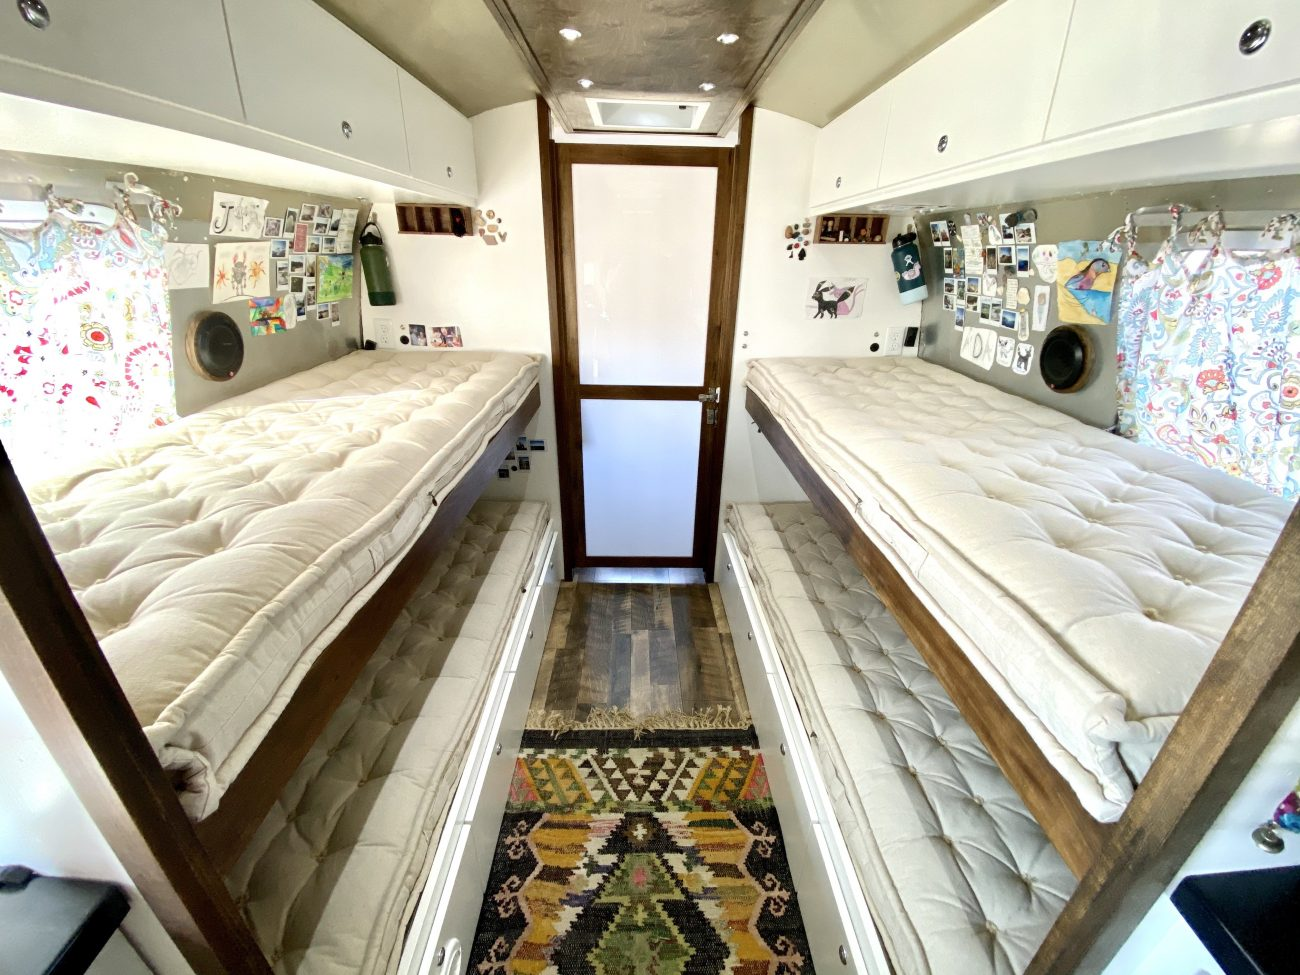 Airstream Bunkbeds - Home of Wool